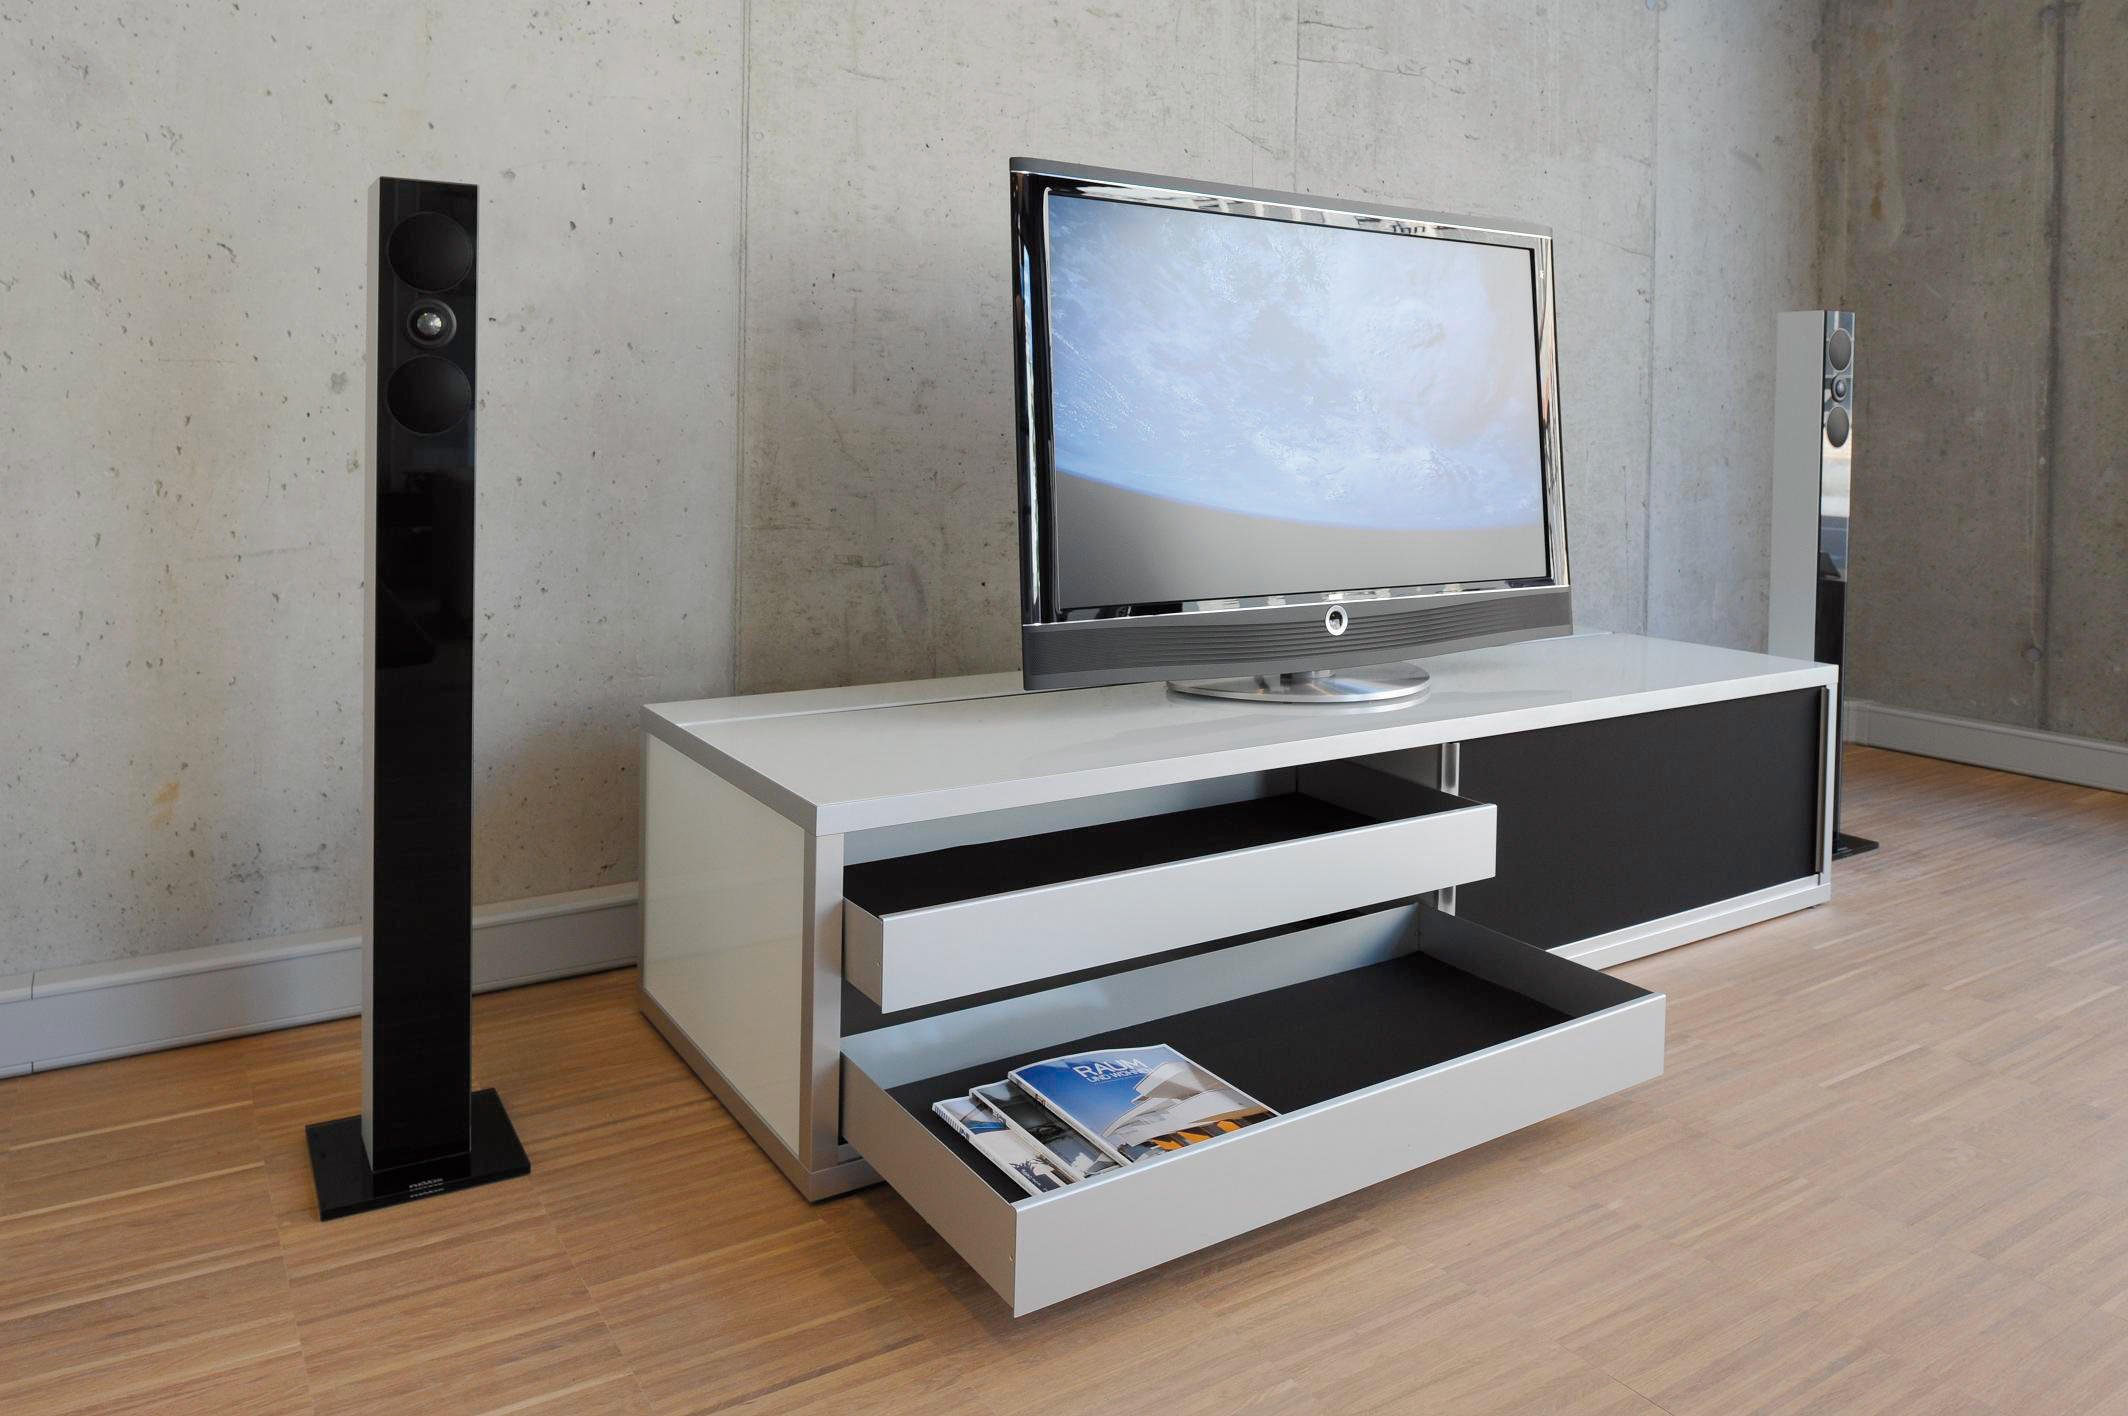 mediam bel multimedia sideboards from cham leon design architonic. Black Bedroom Furniture Sets. Home Design Ideas